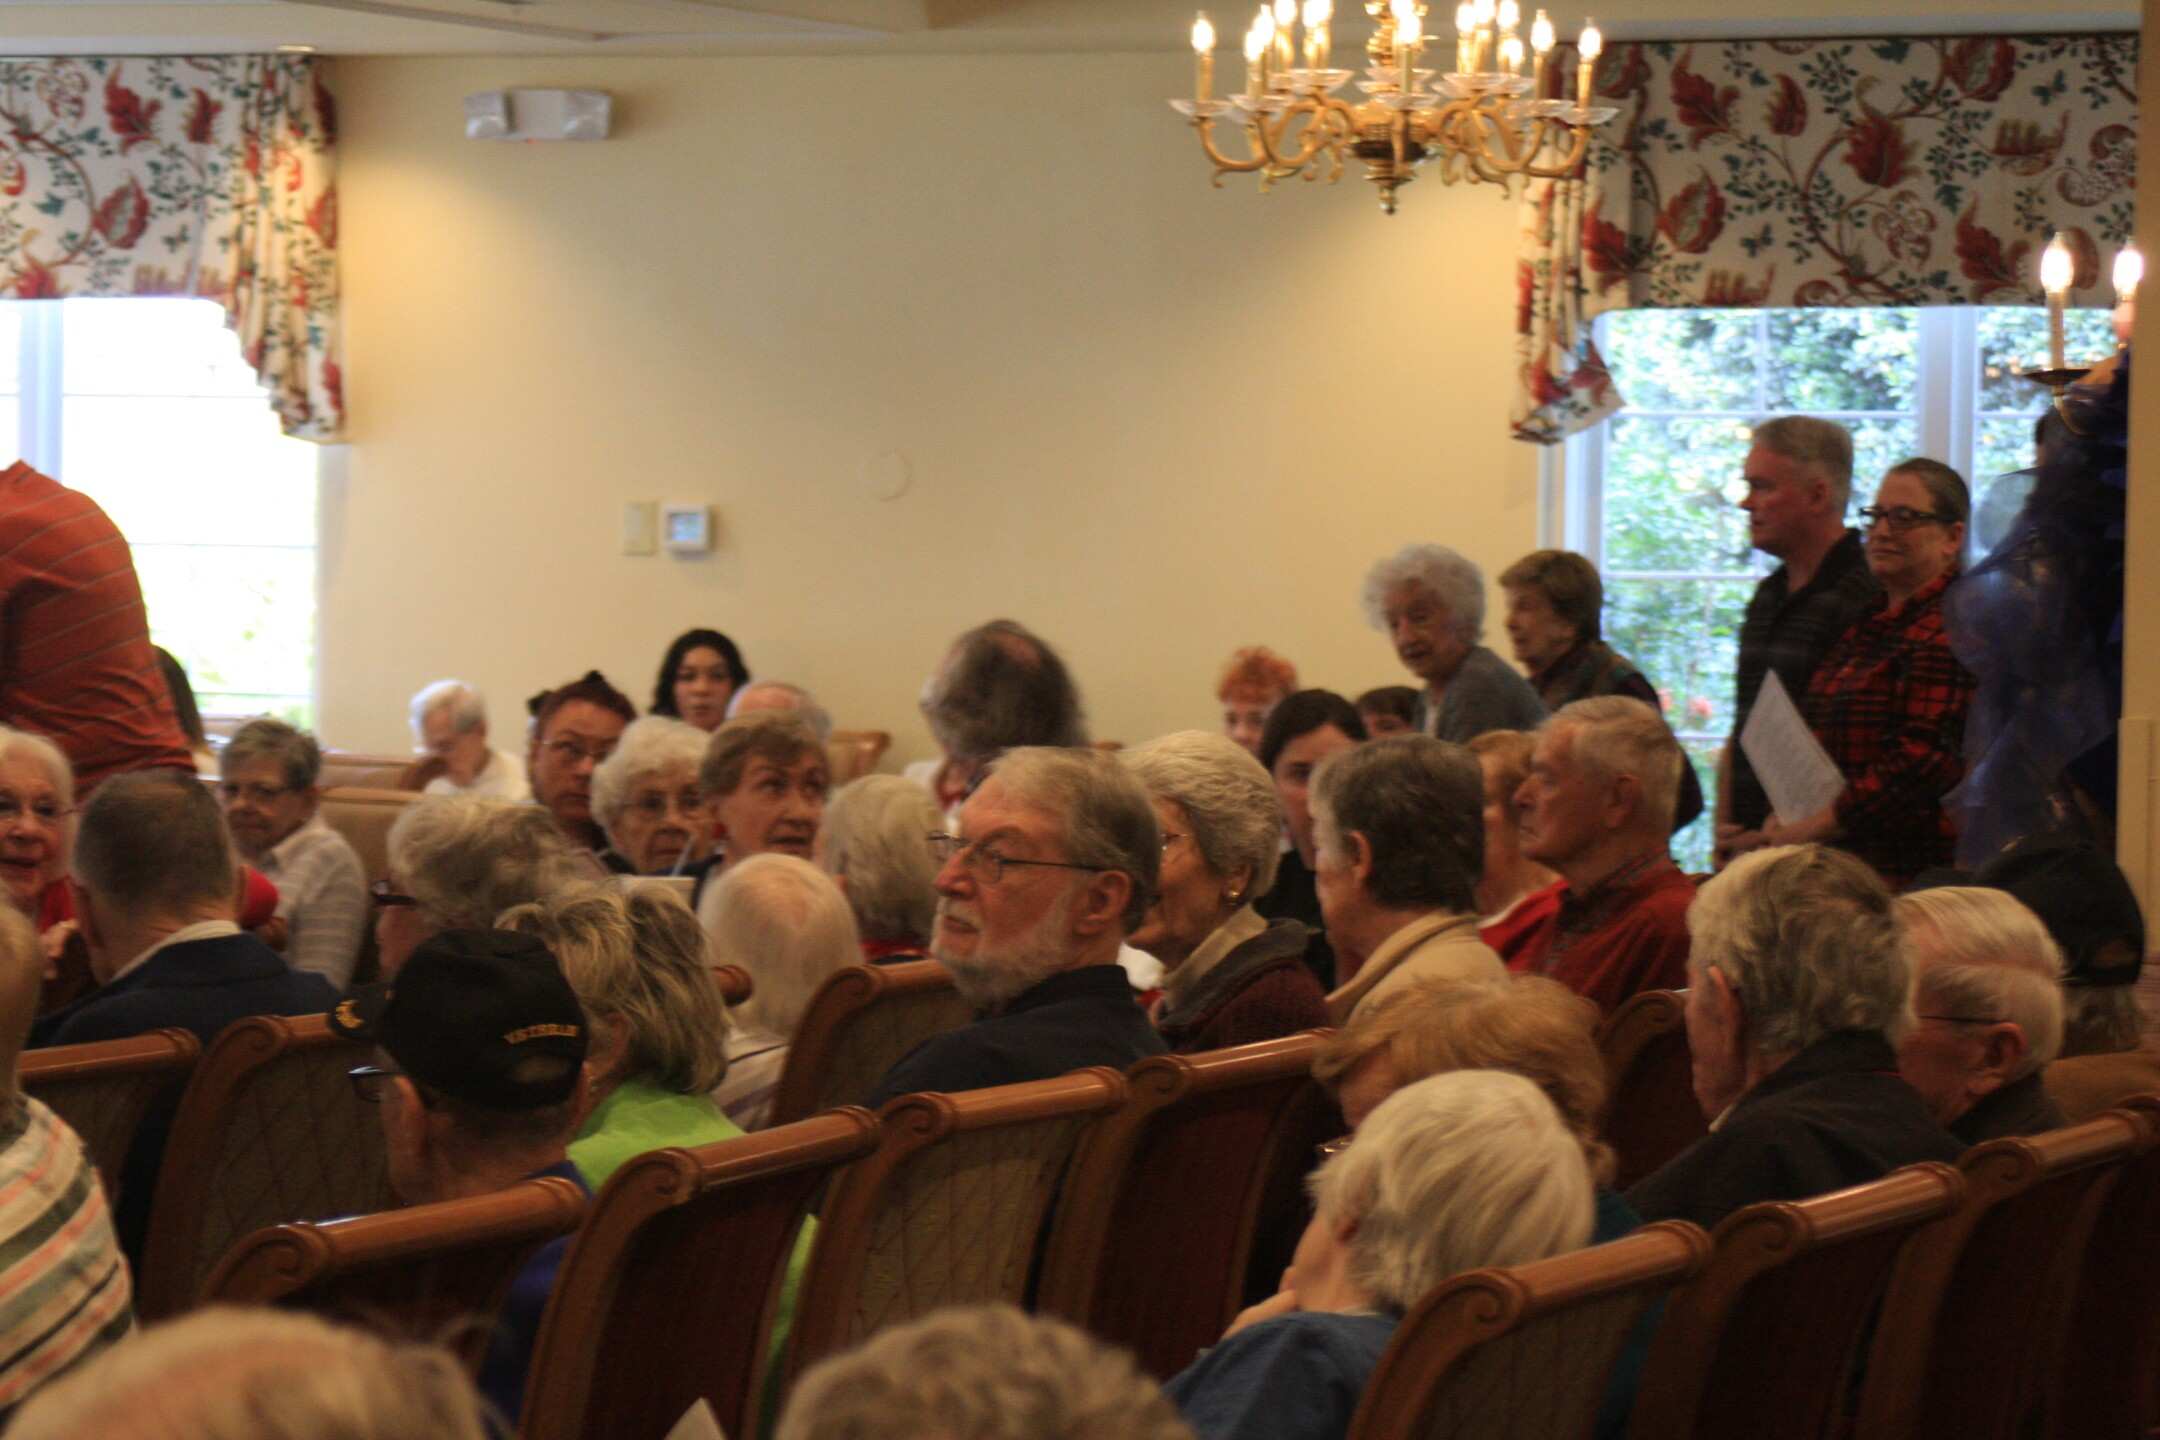 Photos: Senior singers at local retirement community salute soldiers on Veterans Day